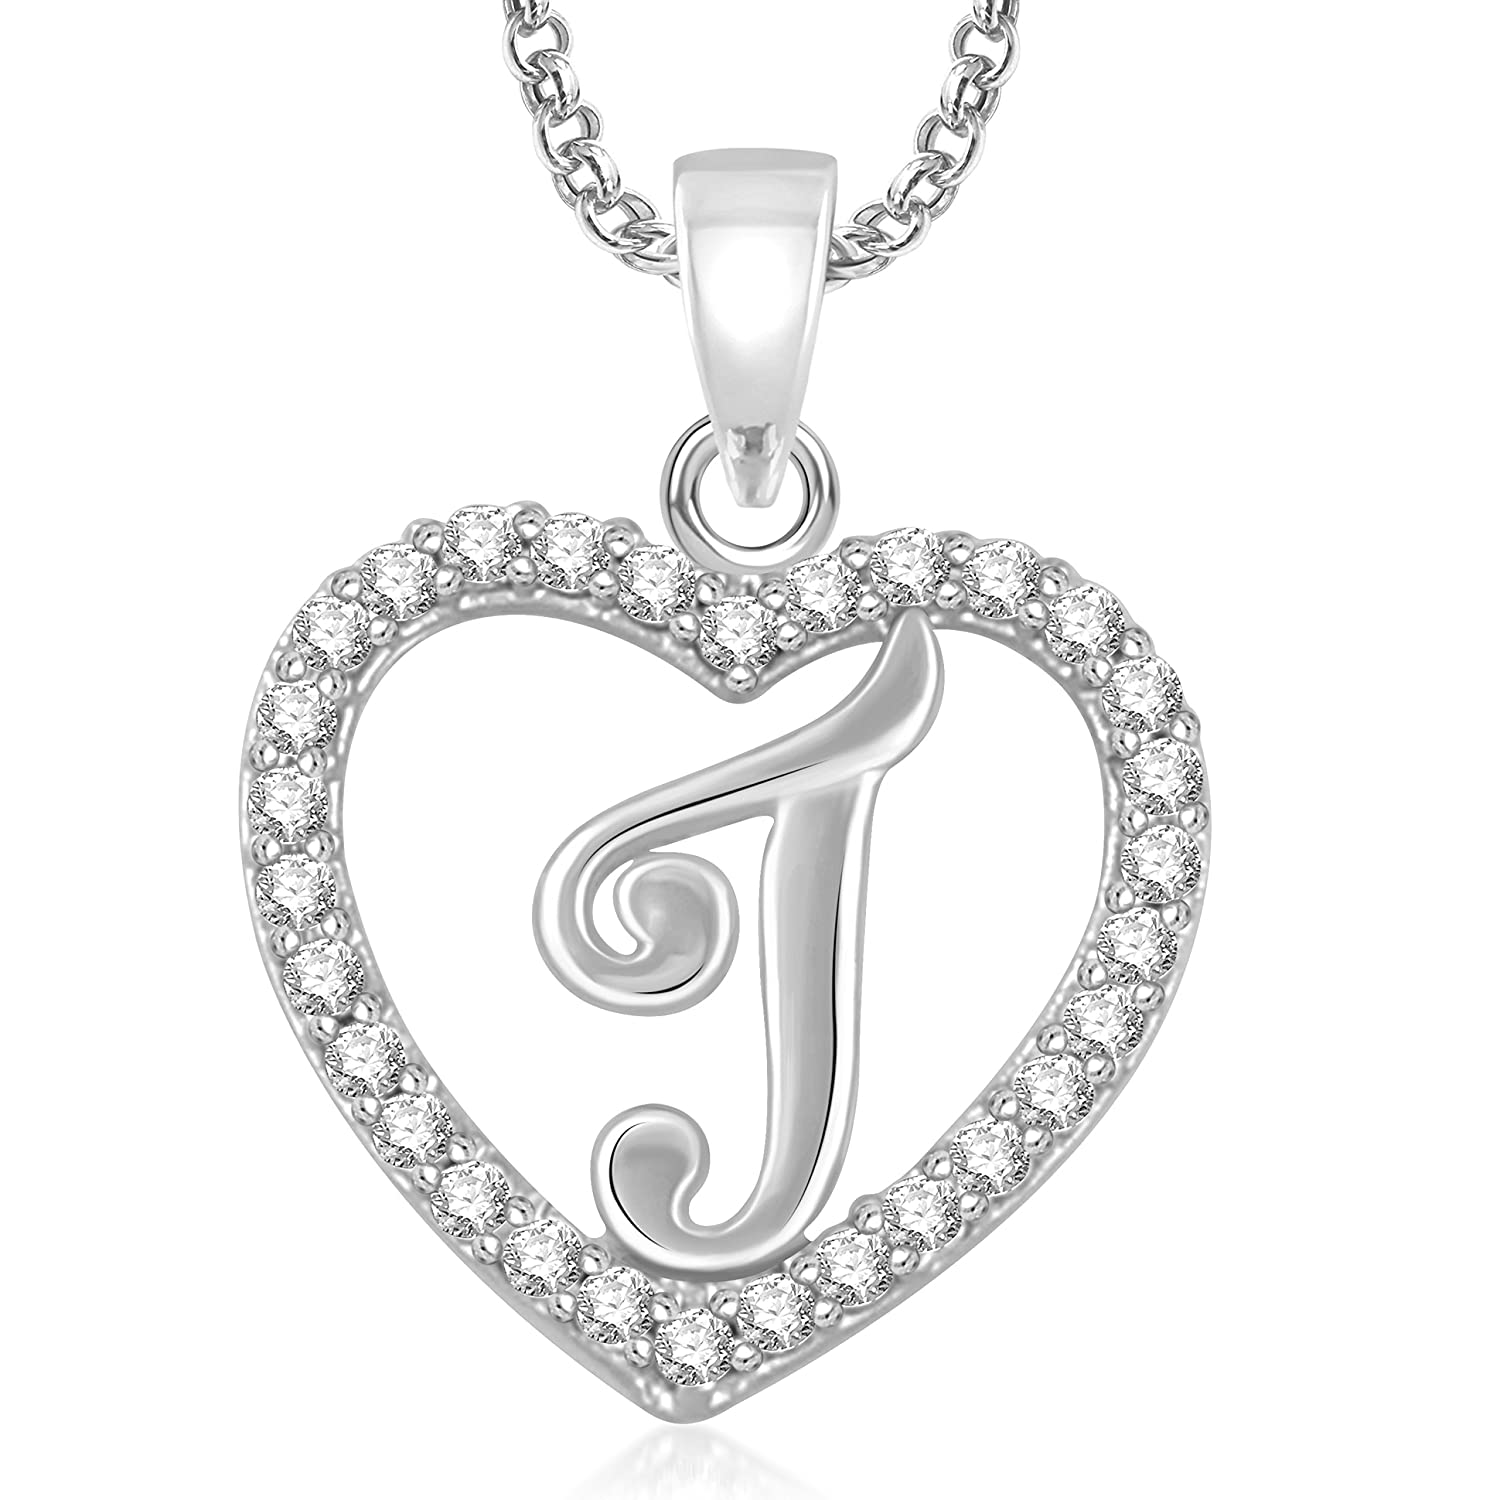 Valentine gifts meenaz silver plated j letter pendants alphabet valentine gifts meenaz silver plated j letter pendants alphabet pendant with chain for men meenaz amazon jewellery aloadofball Image collections